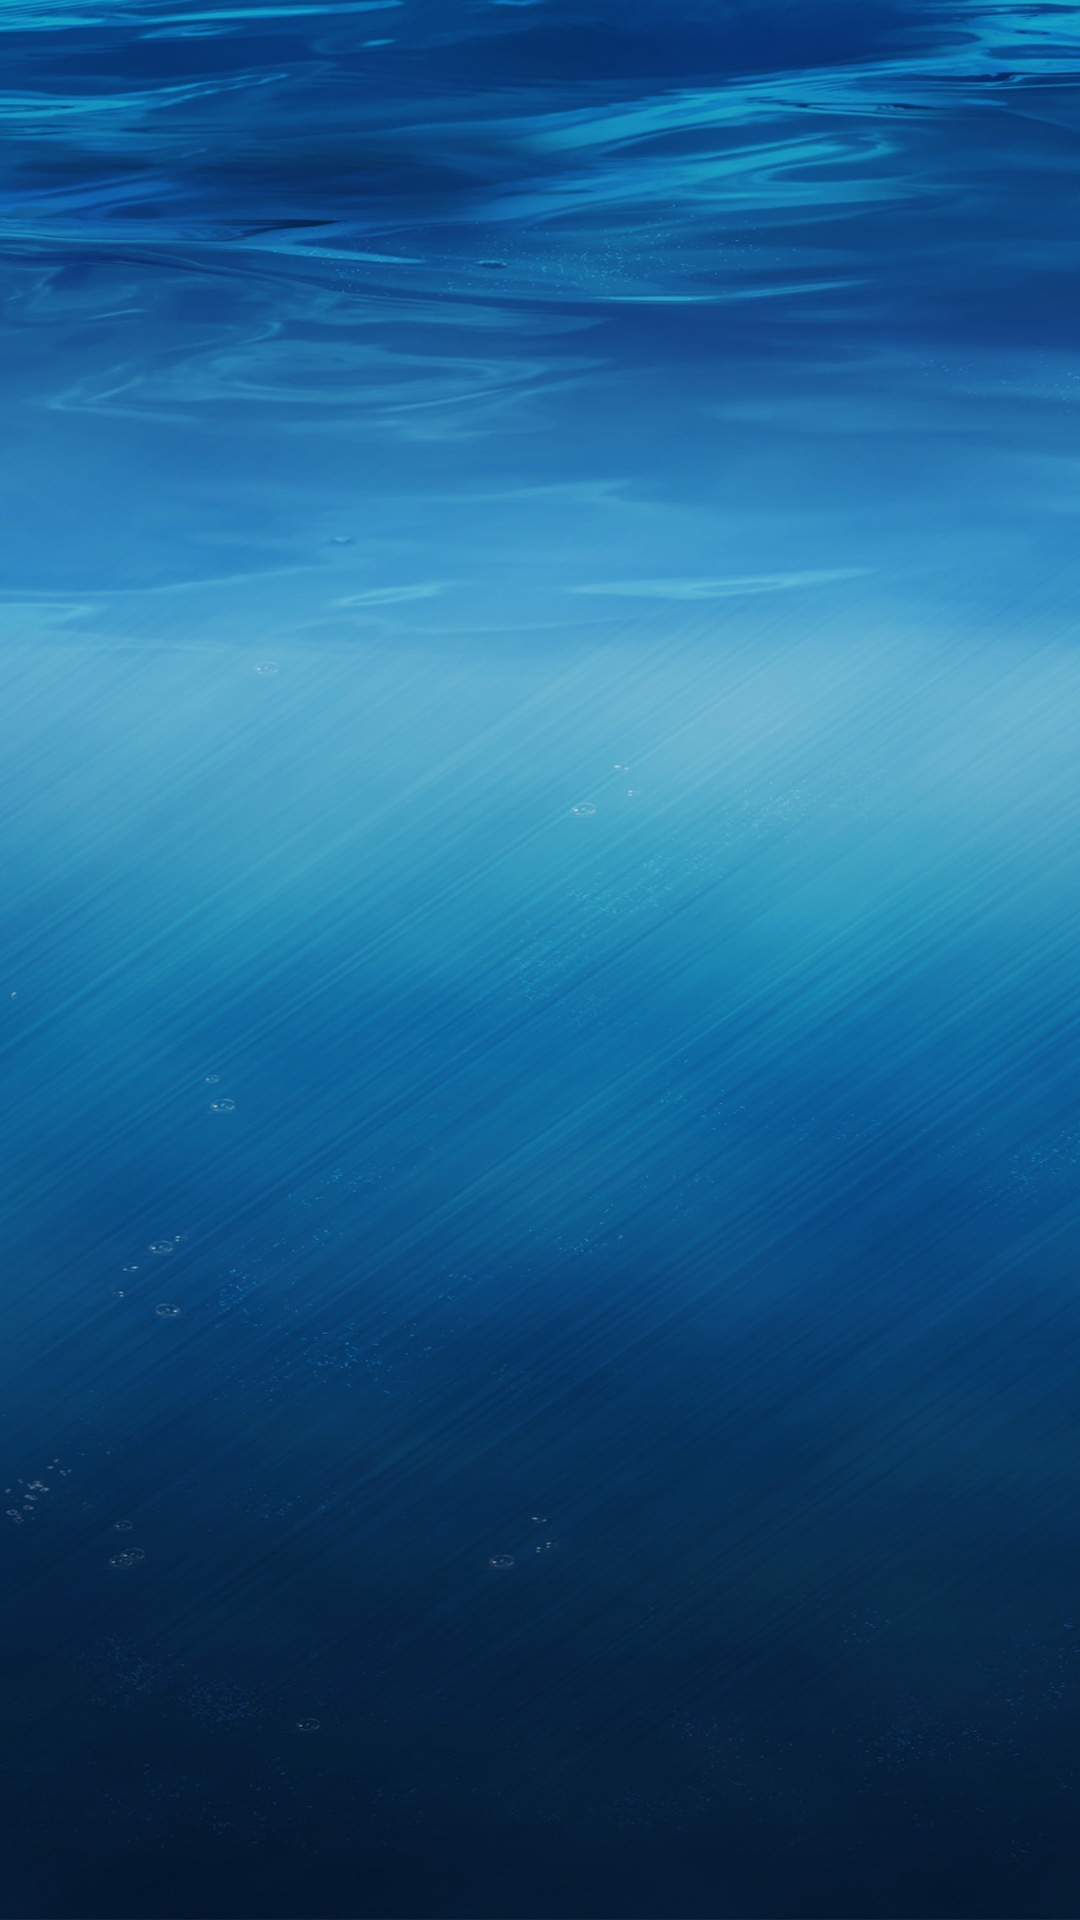 Underwater 5K Wallpapers | HD Wallpapers